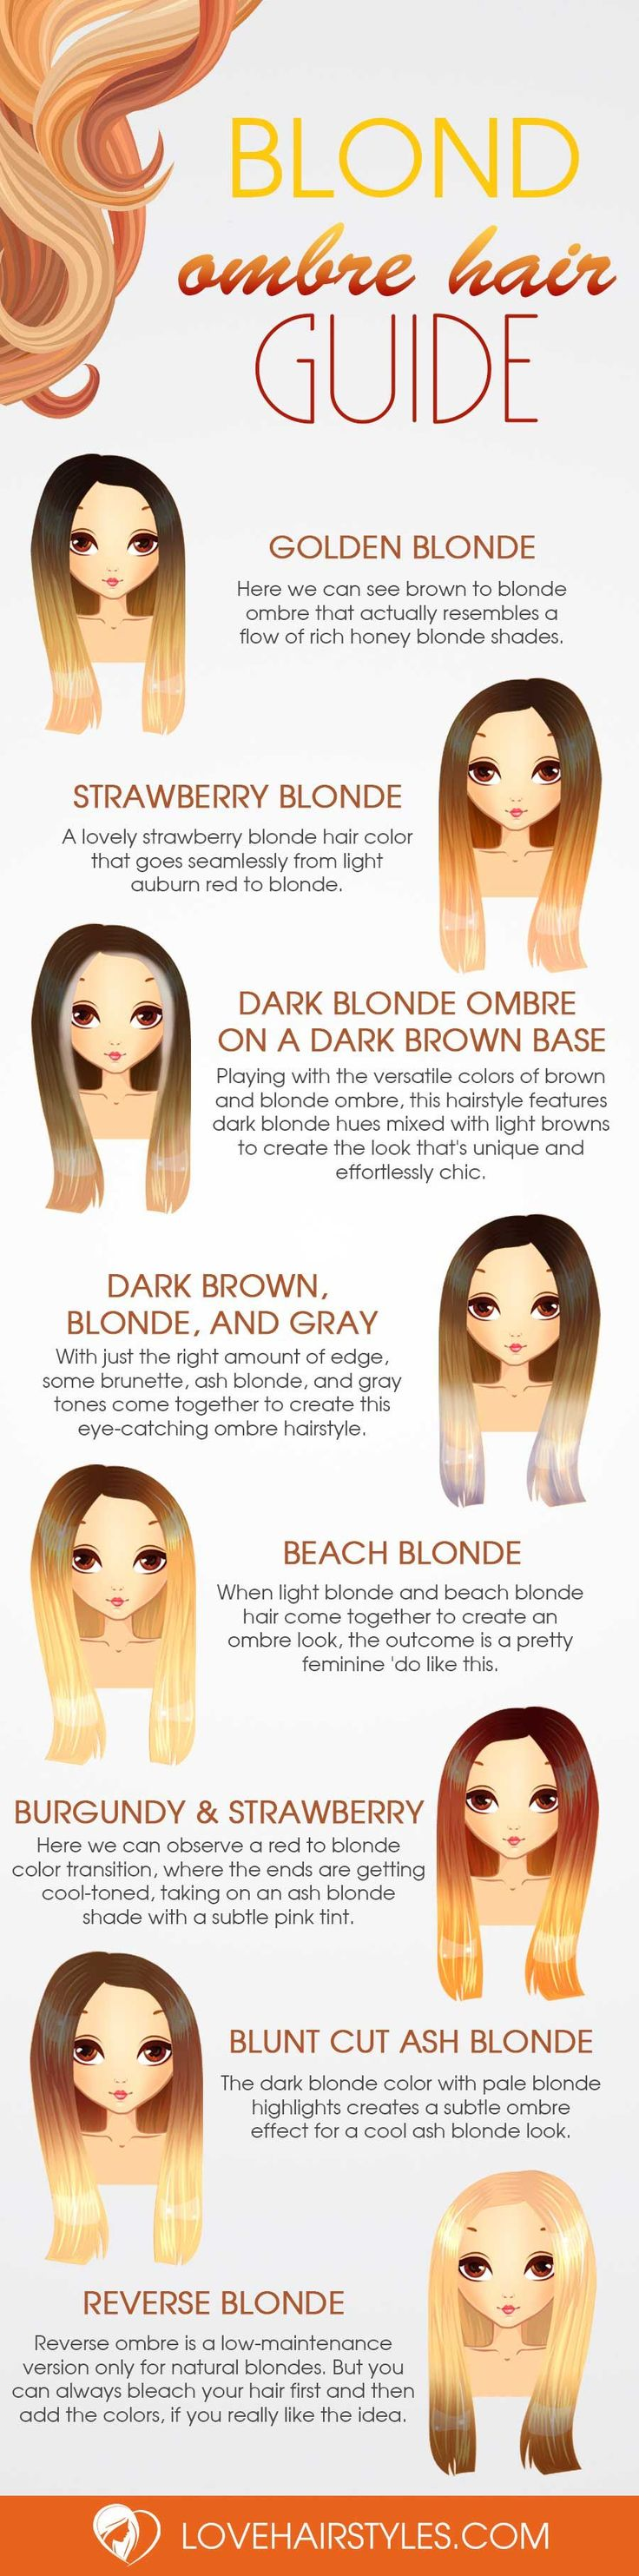 best hairstyles and colors for long hair images on pinterest